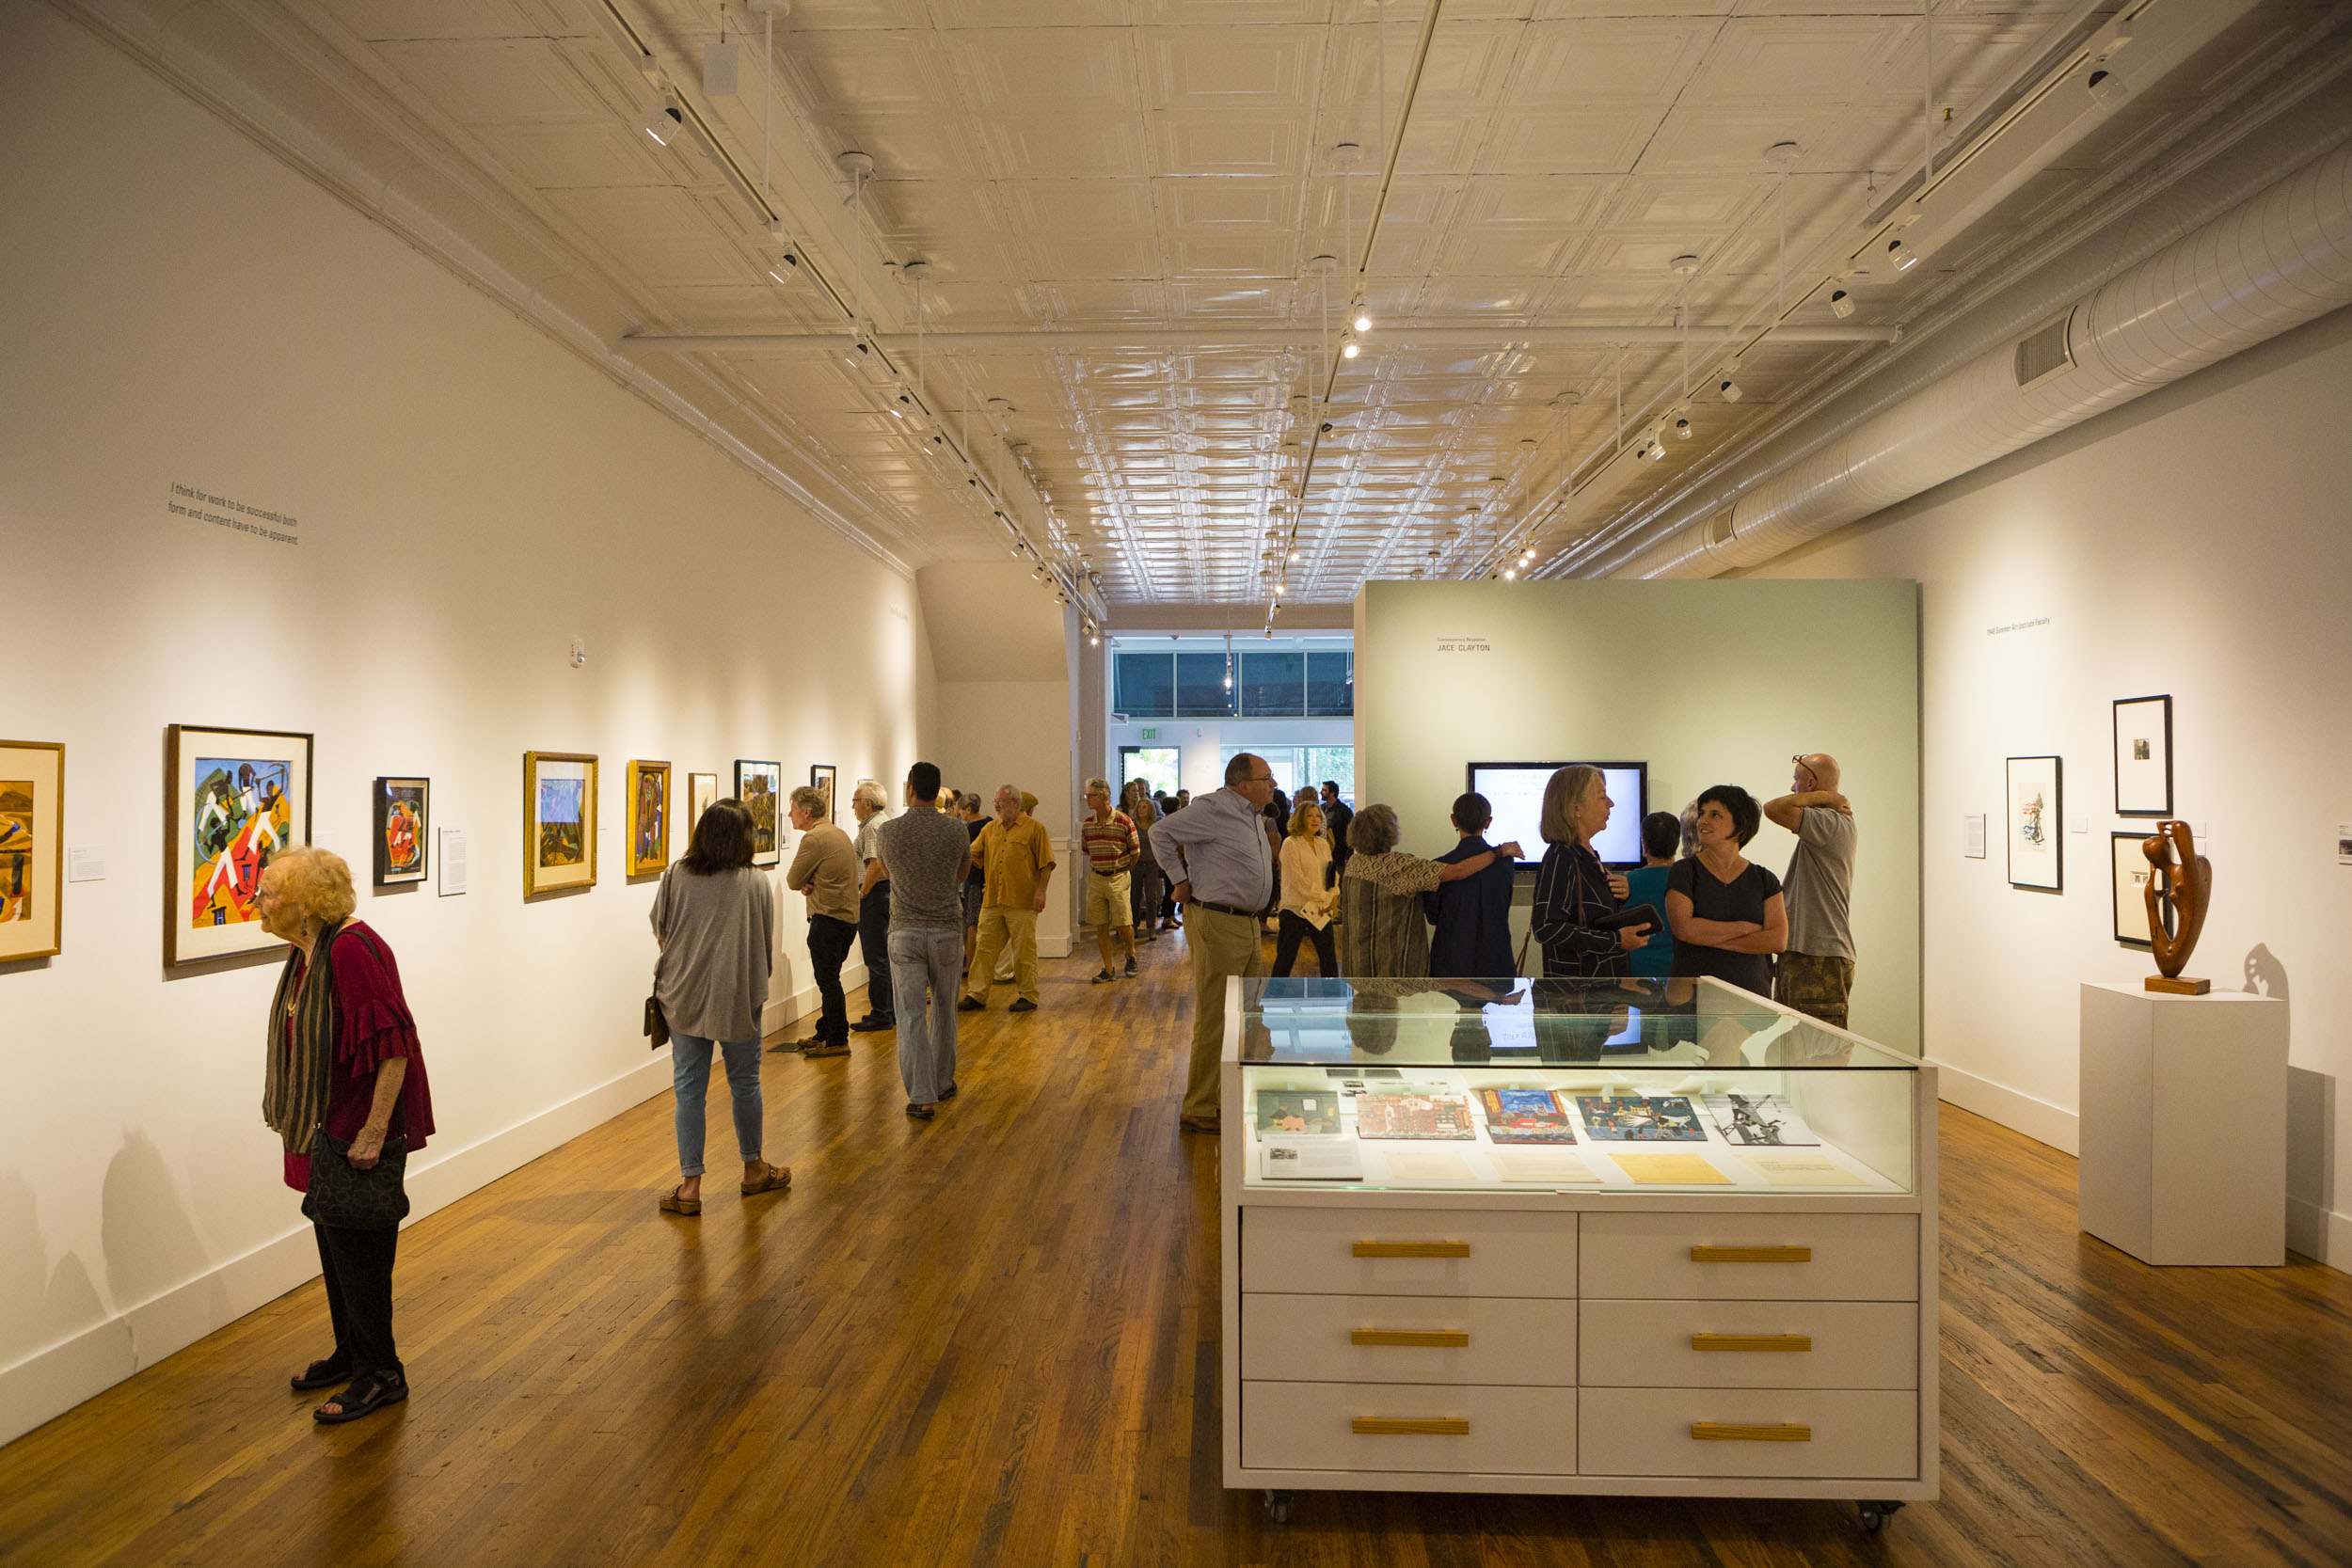 About the Museum - Black Mountain College Museum + Arts Center